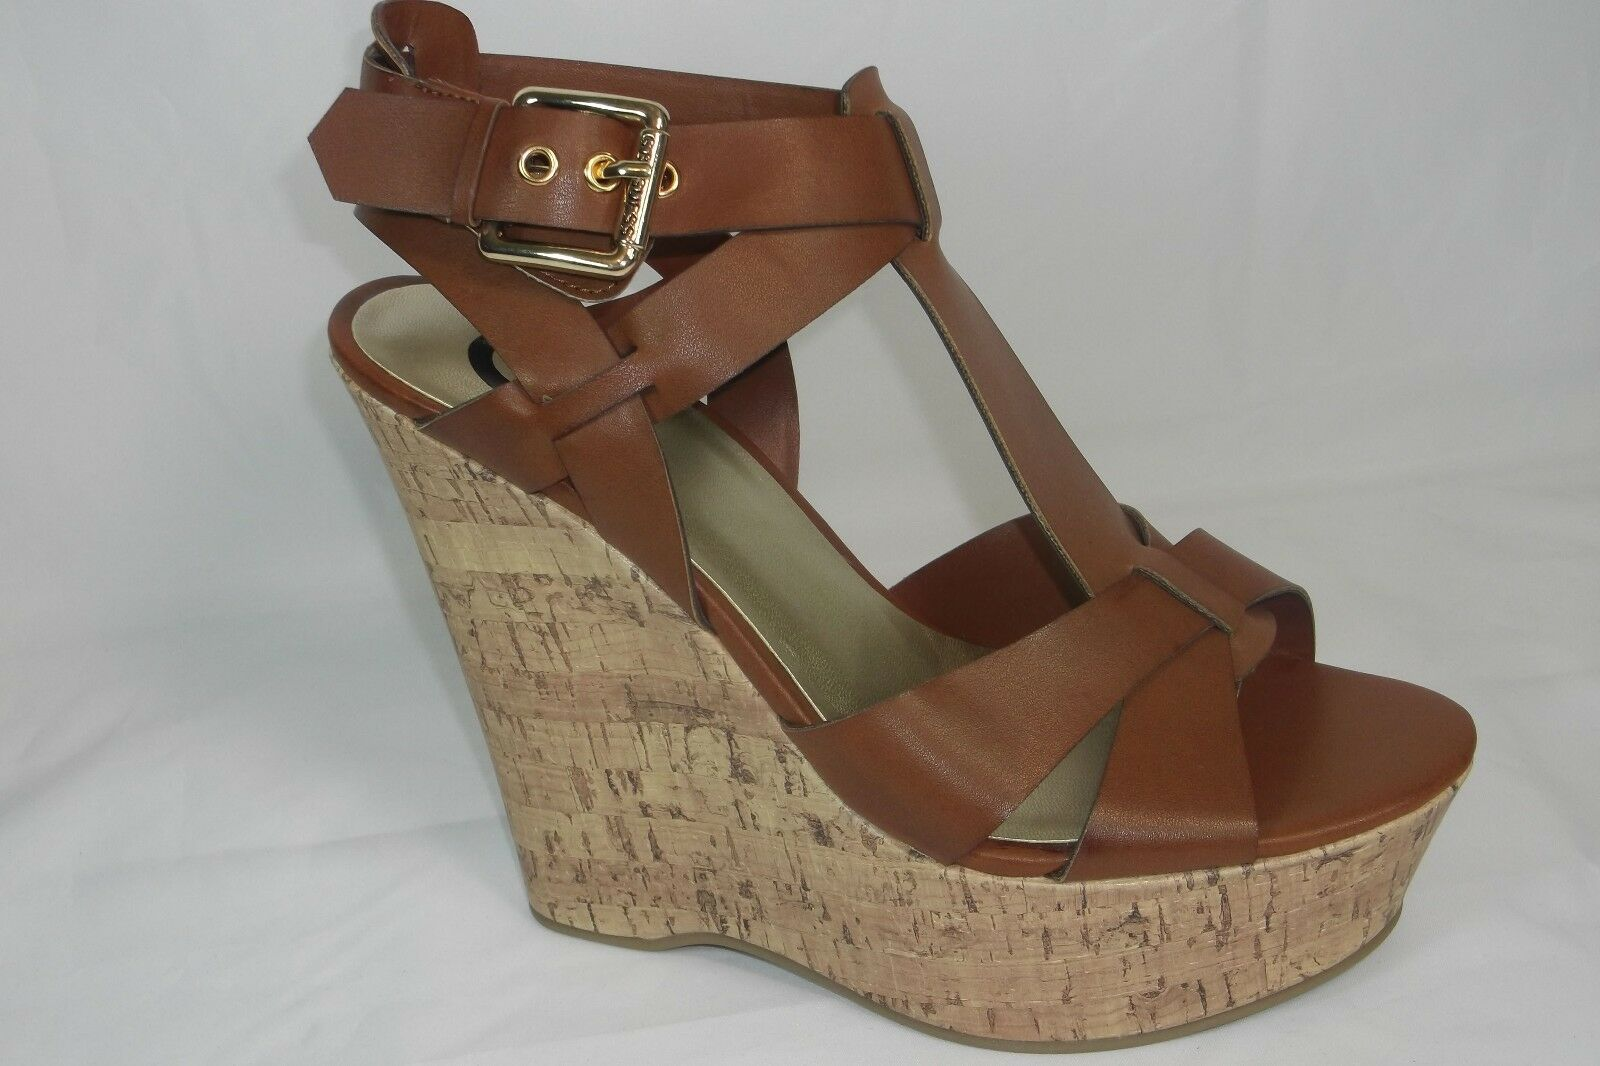 GUESS G BY GUESS GG ENTRY BROWN WEDGE STRAPPY SANDALS 9.5M NEW NEW IN BOX